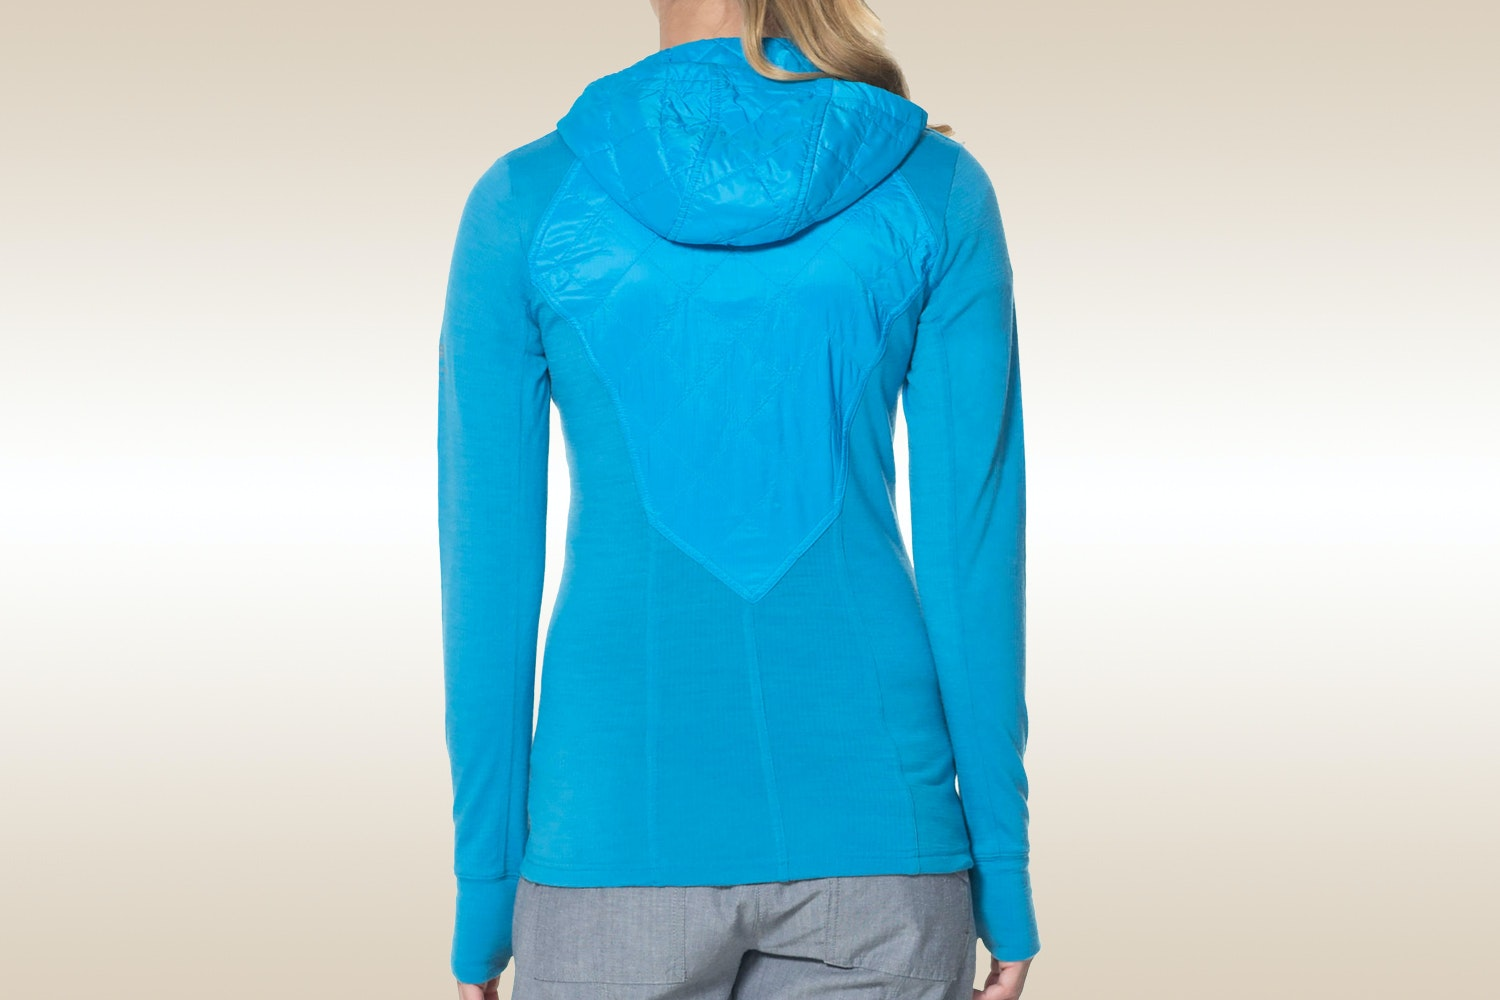 Icebreaker Women's LS Zip Shirts